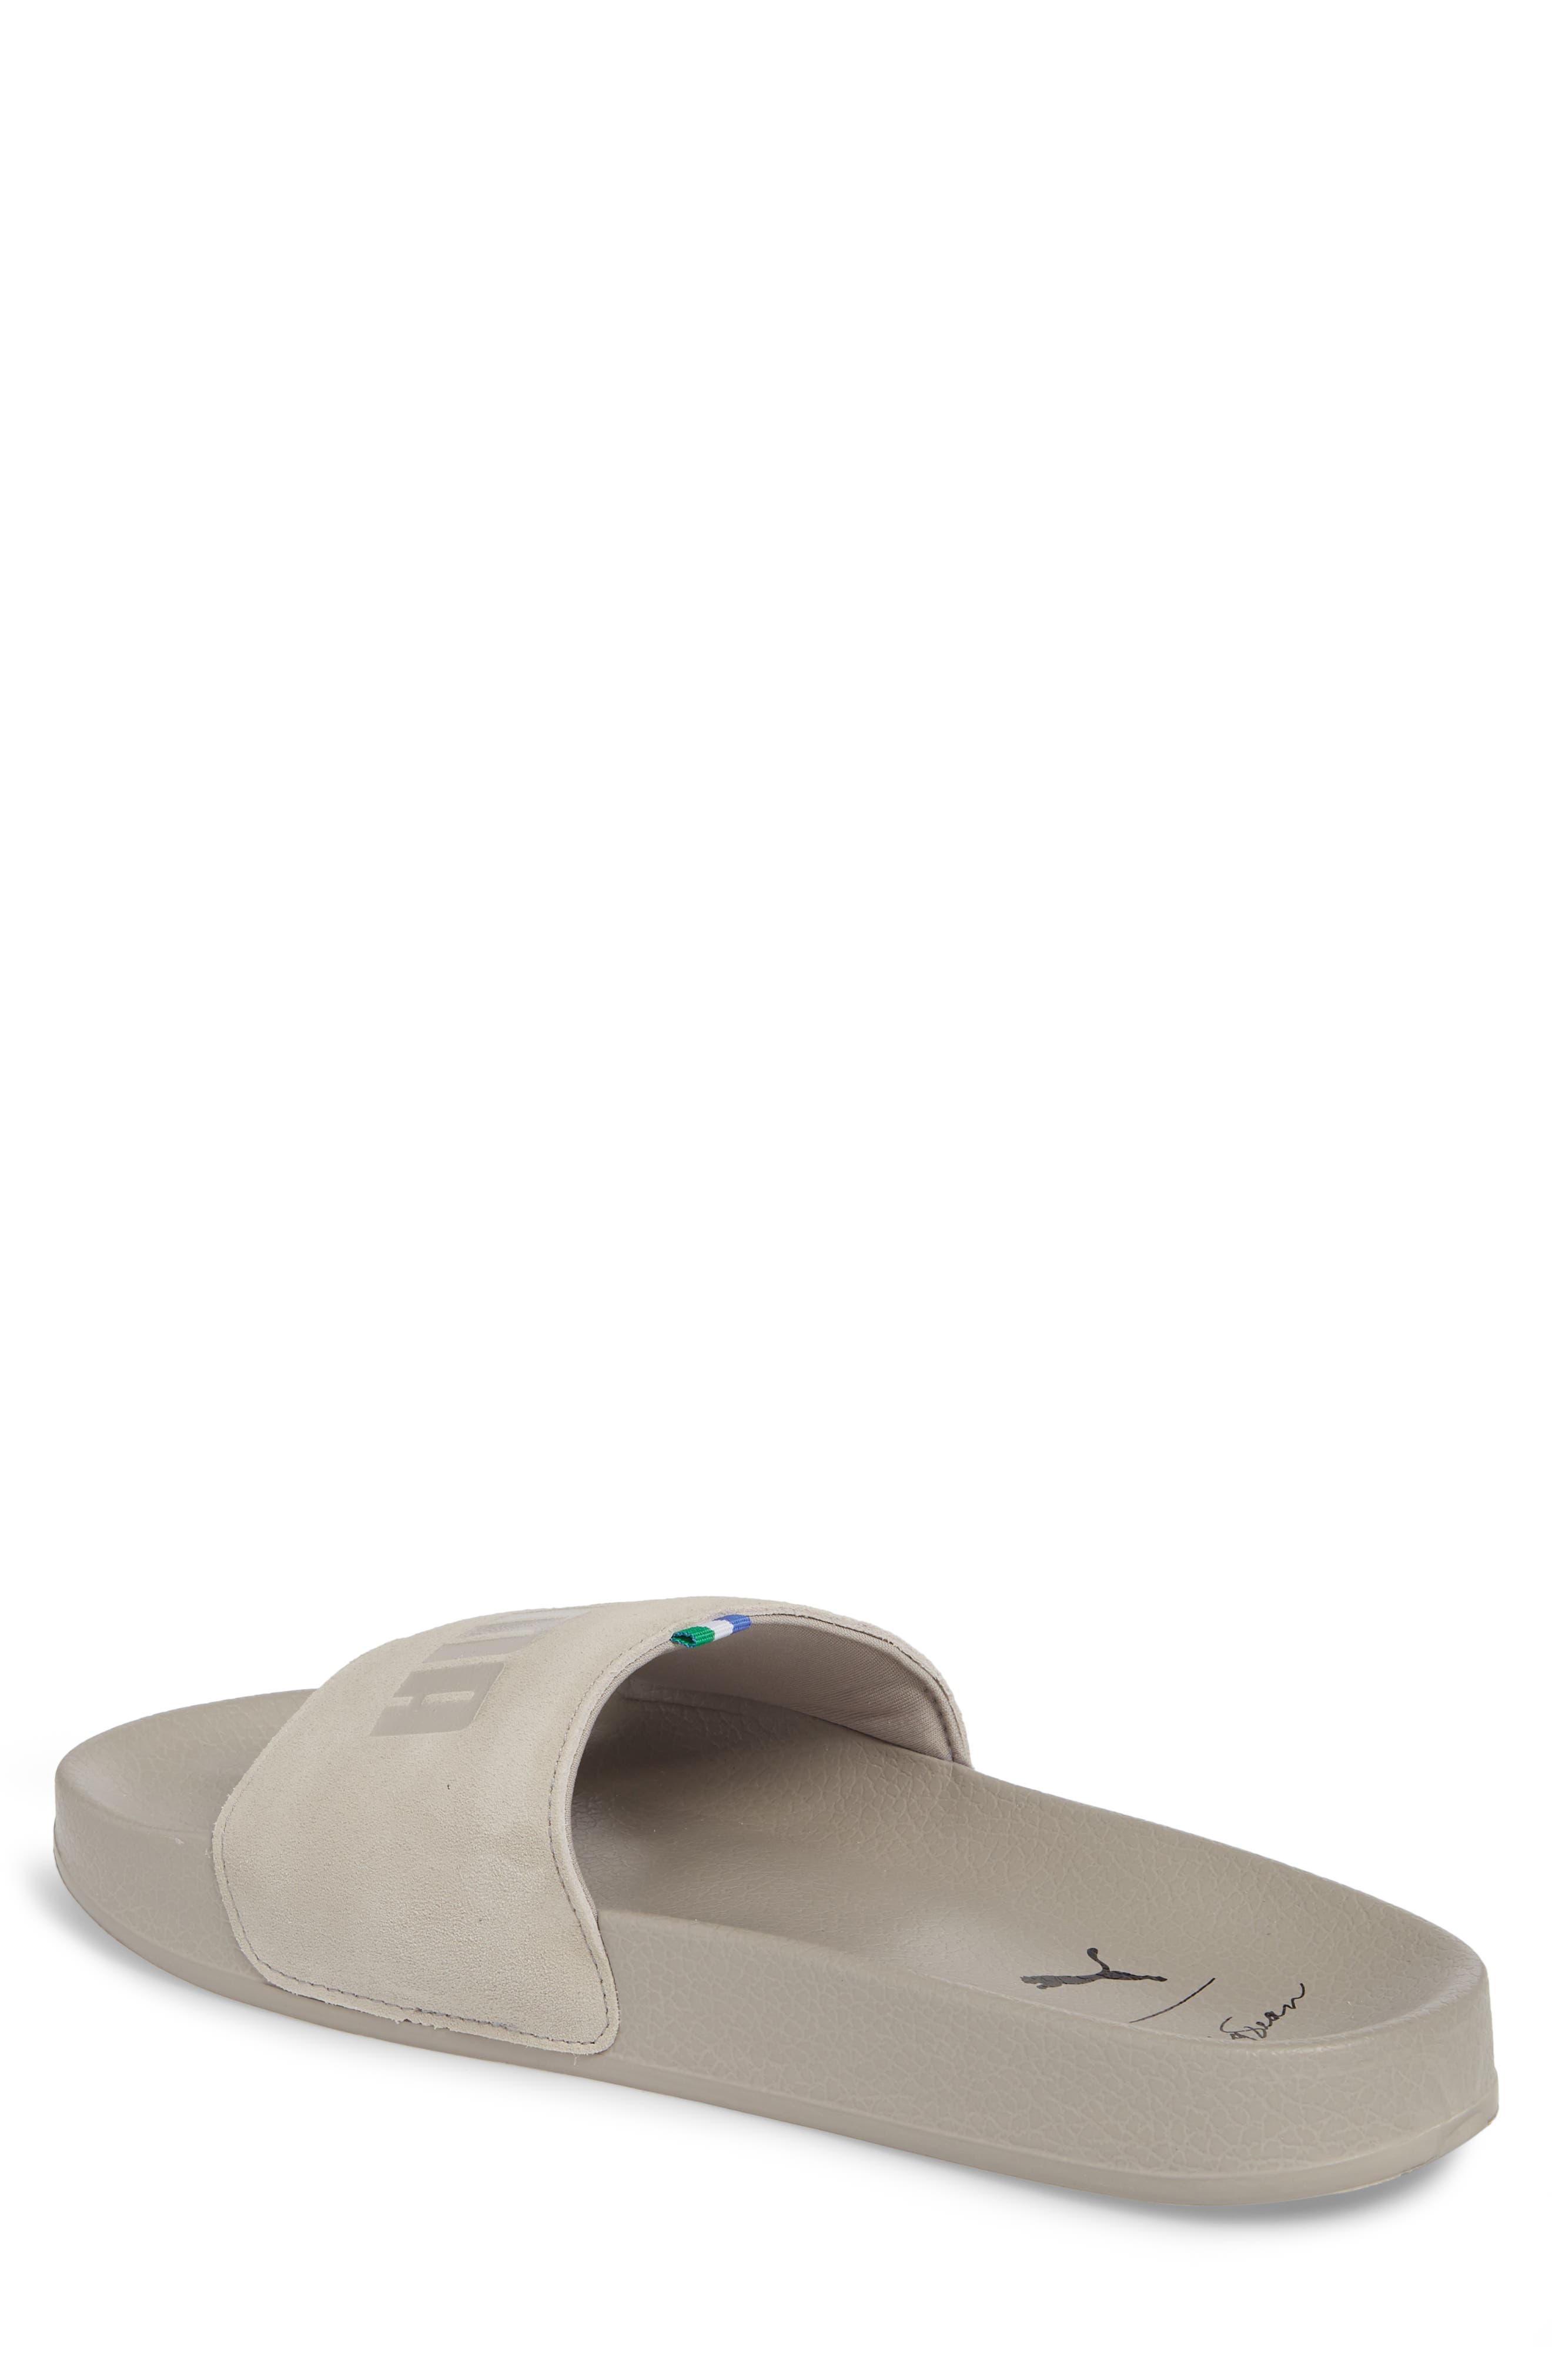 x Big Sean Leadcat Slide Sandal,                             Alternate thumbnail 2, color,                             Whisper White Leather/ Suede